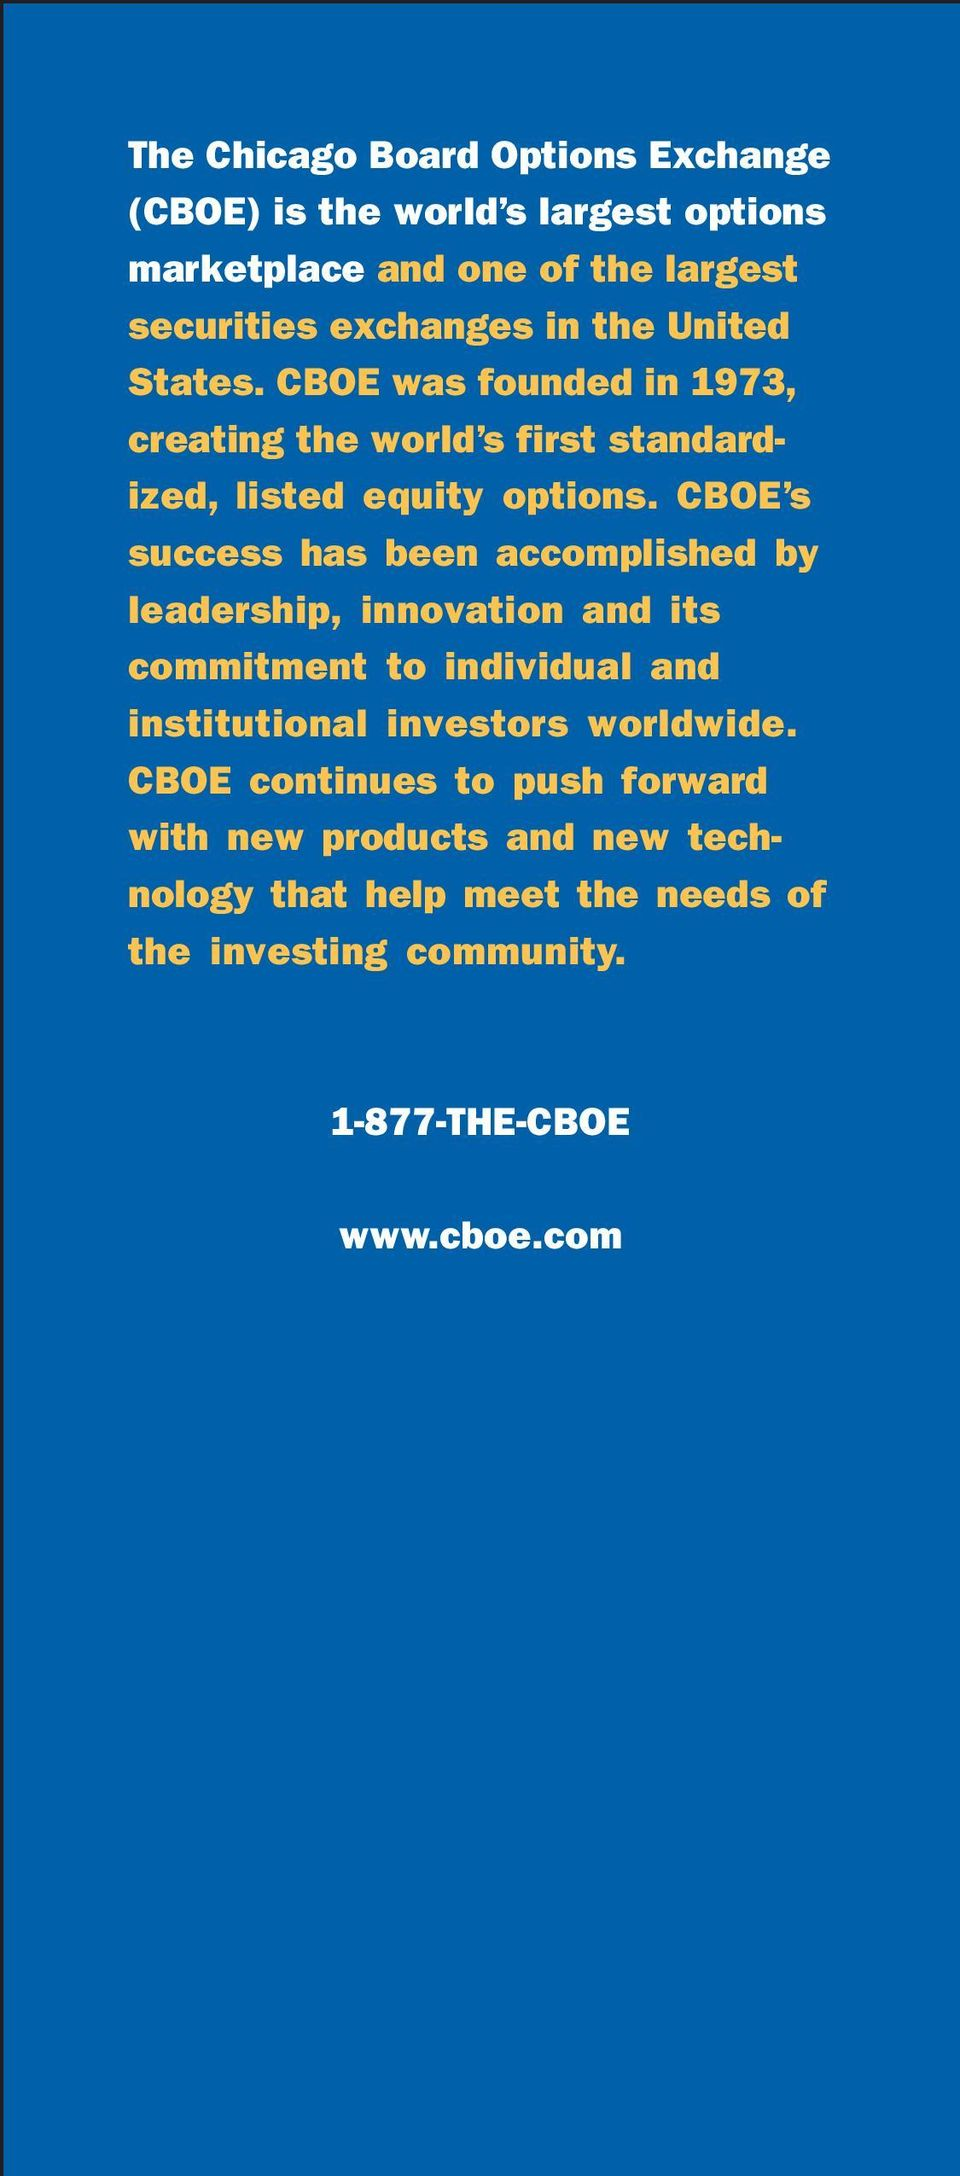 CBOE s success has been accomplished by leadership, innovation and its commitment to individual and institutional investors